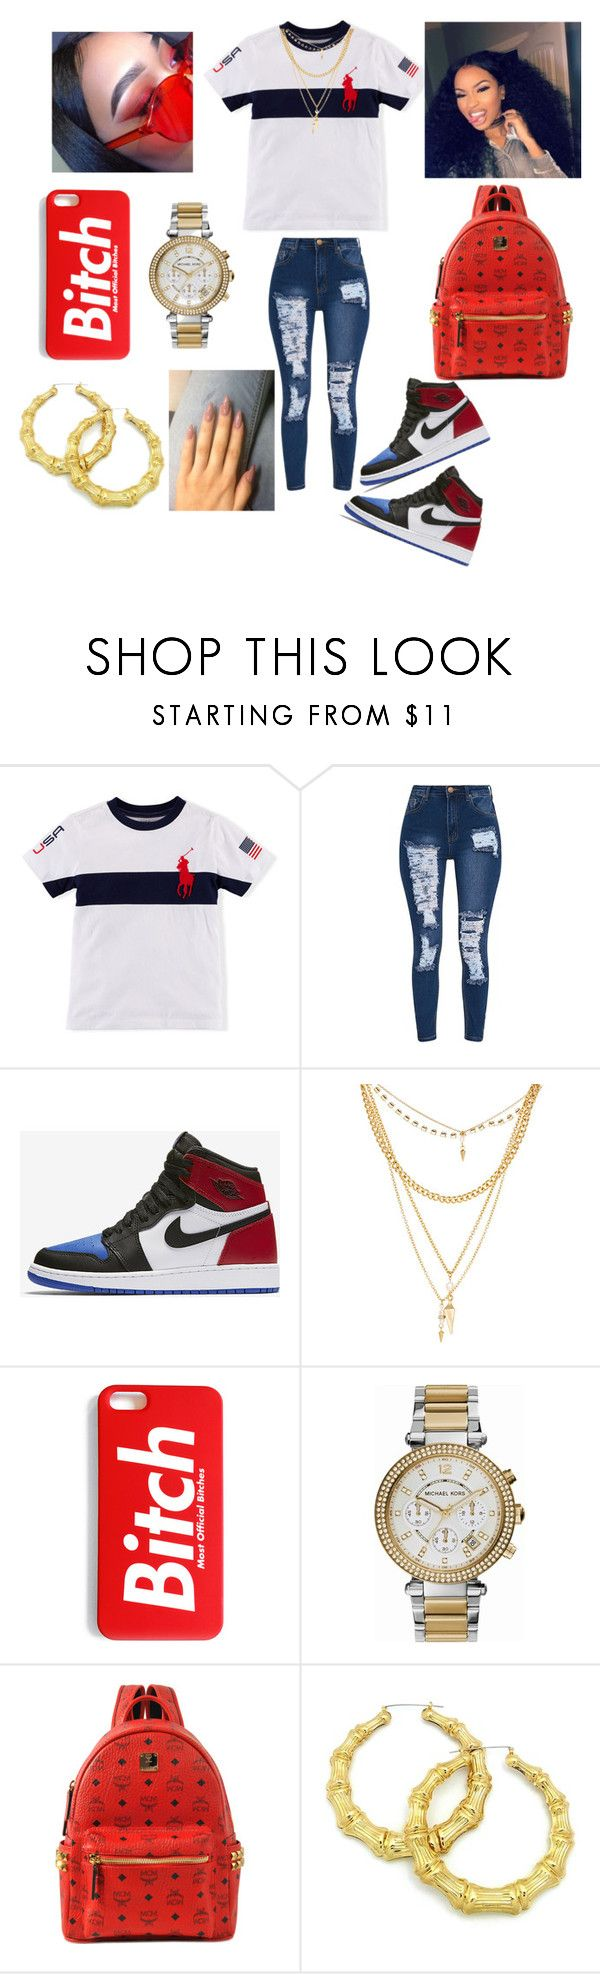 """Untitled #109"" by analanae ❤ liked on Polyvore featuring NIKE, Ettika, Michael Kors and MCM"